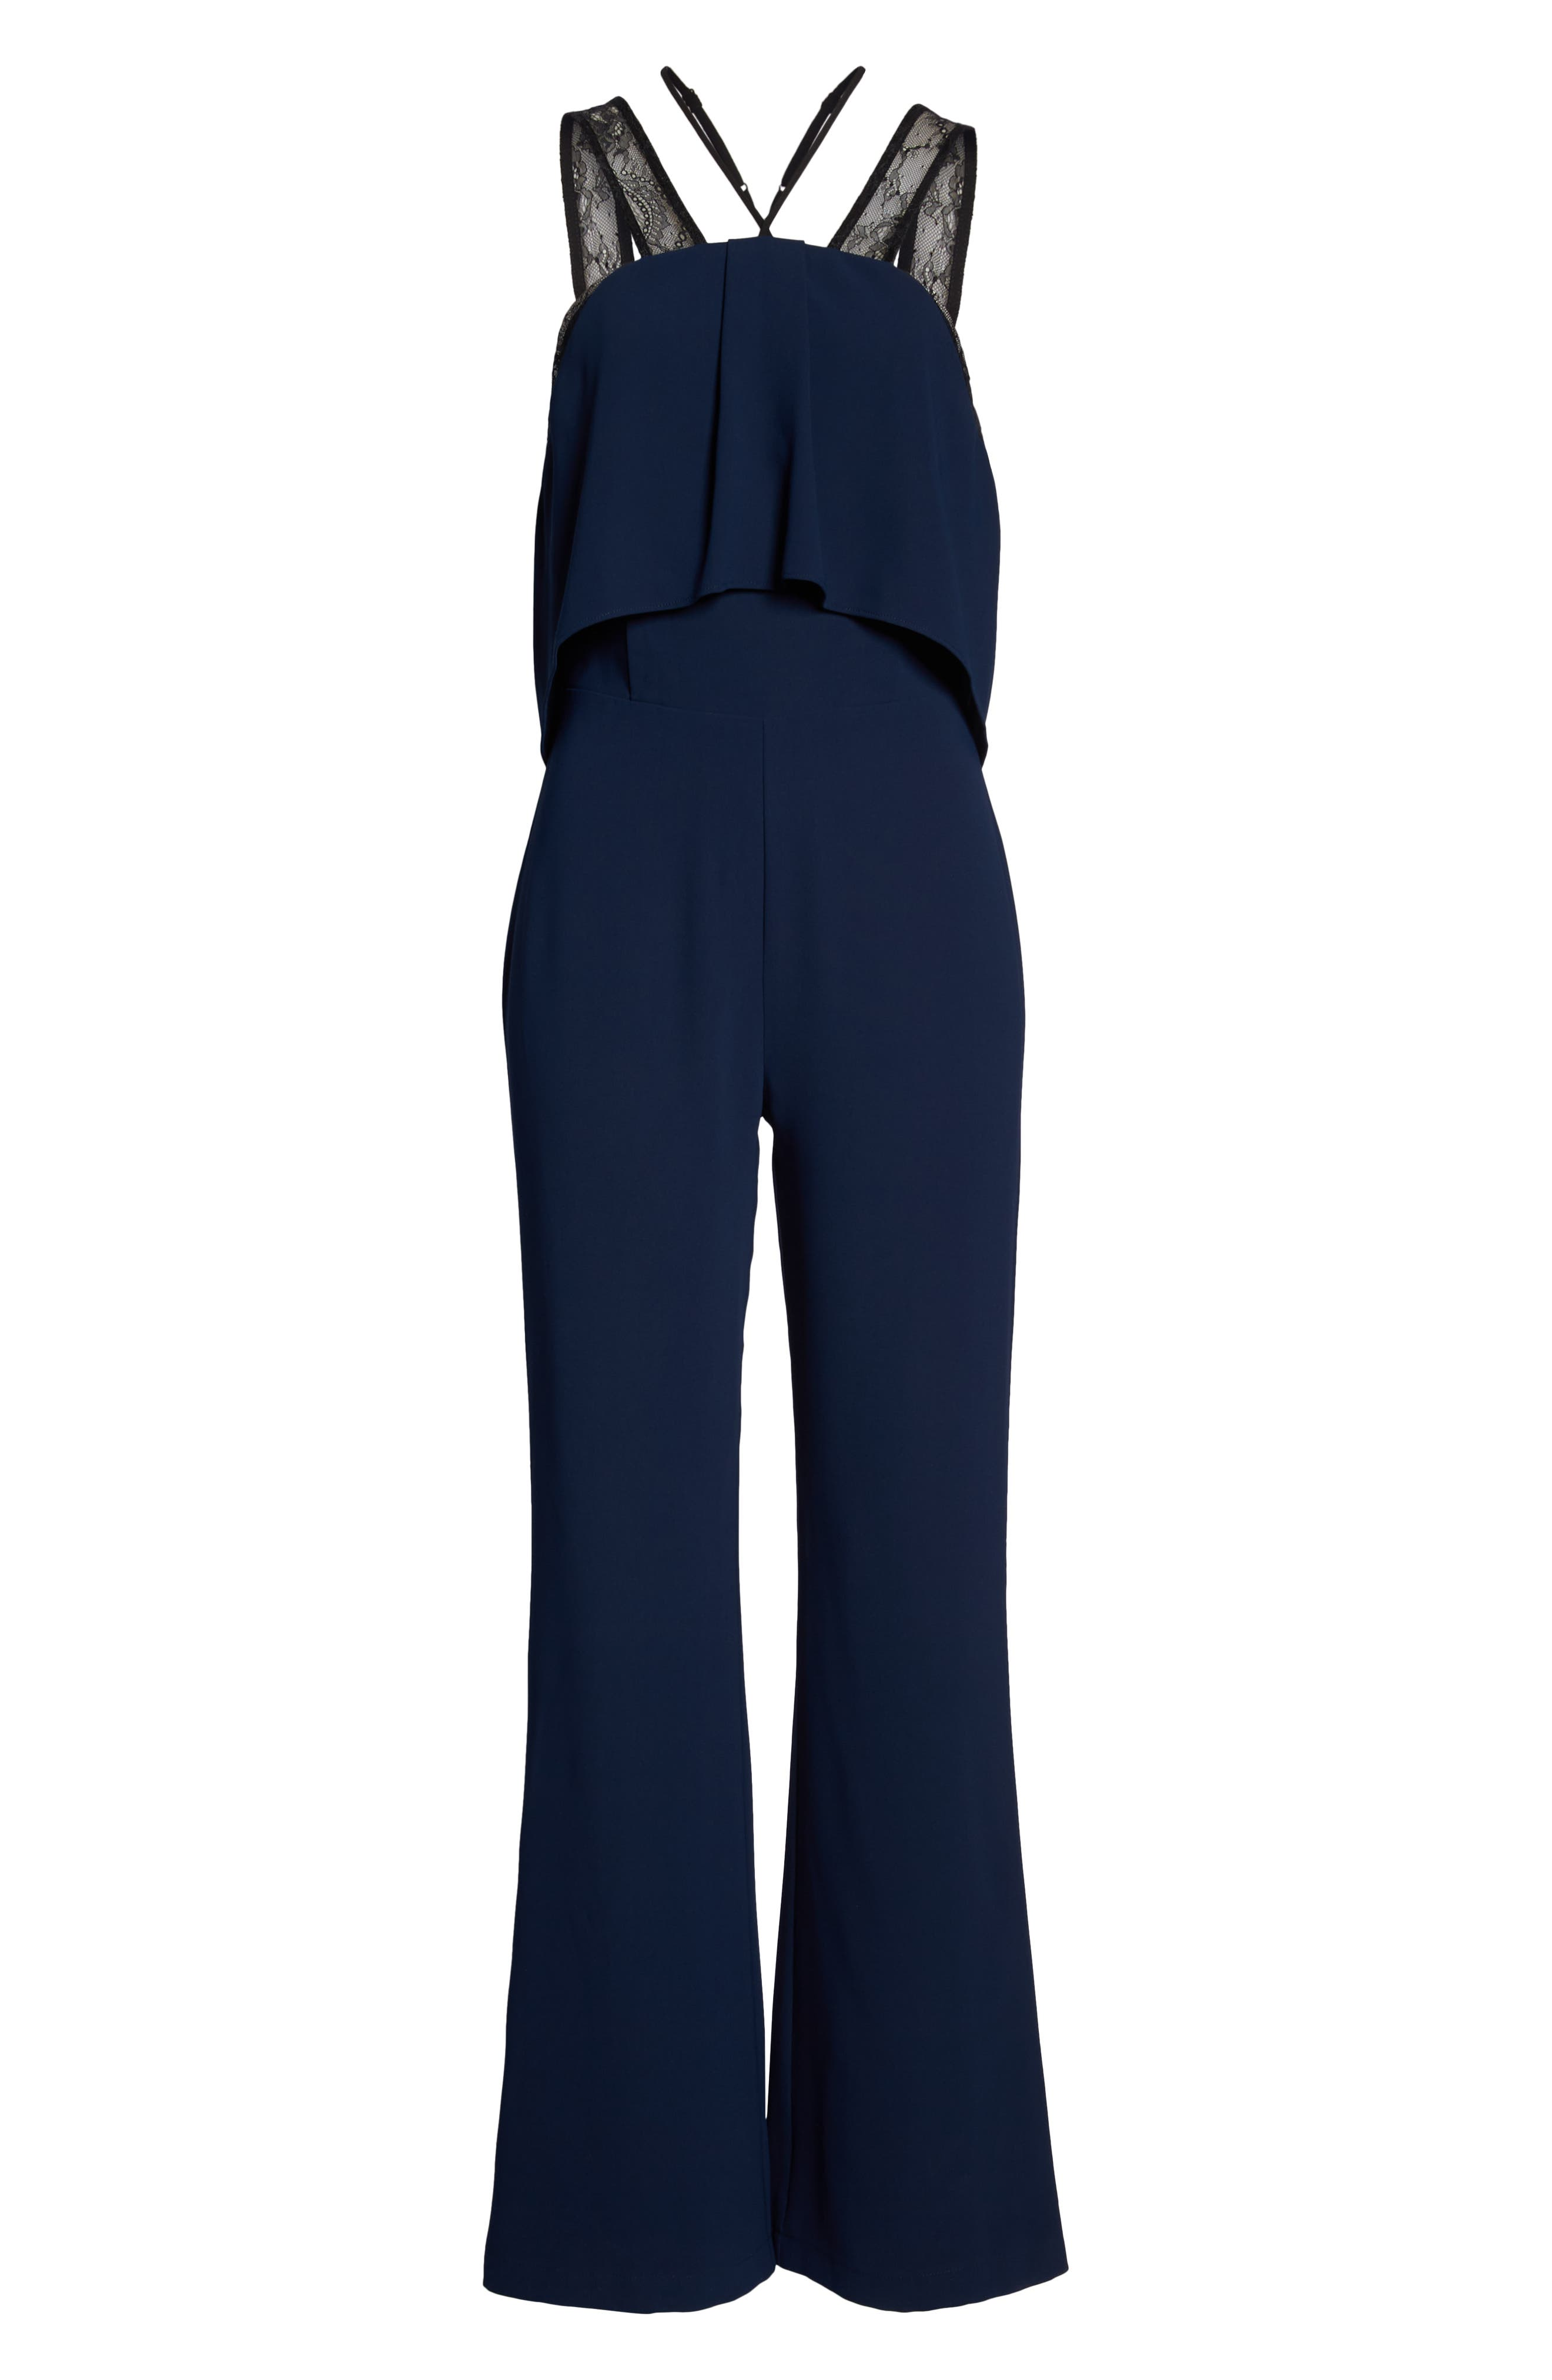 Lace Strap Popover Bodice Jumpsuit,                             Alternate thumbnail 7, color,                             NAVY